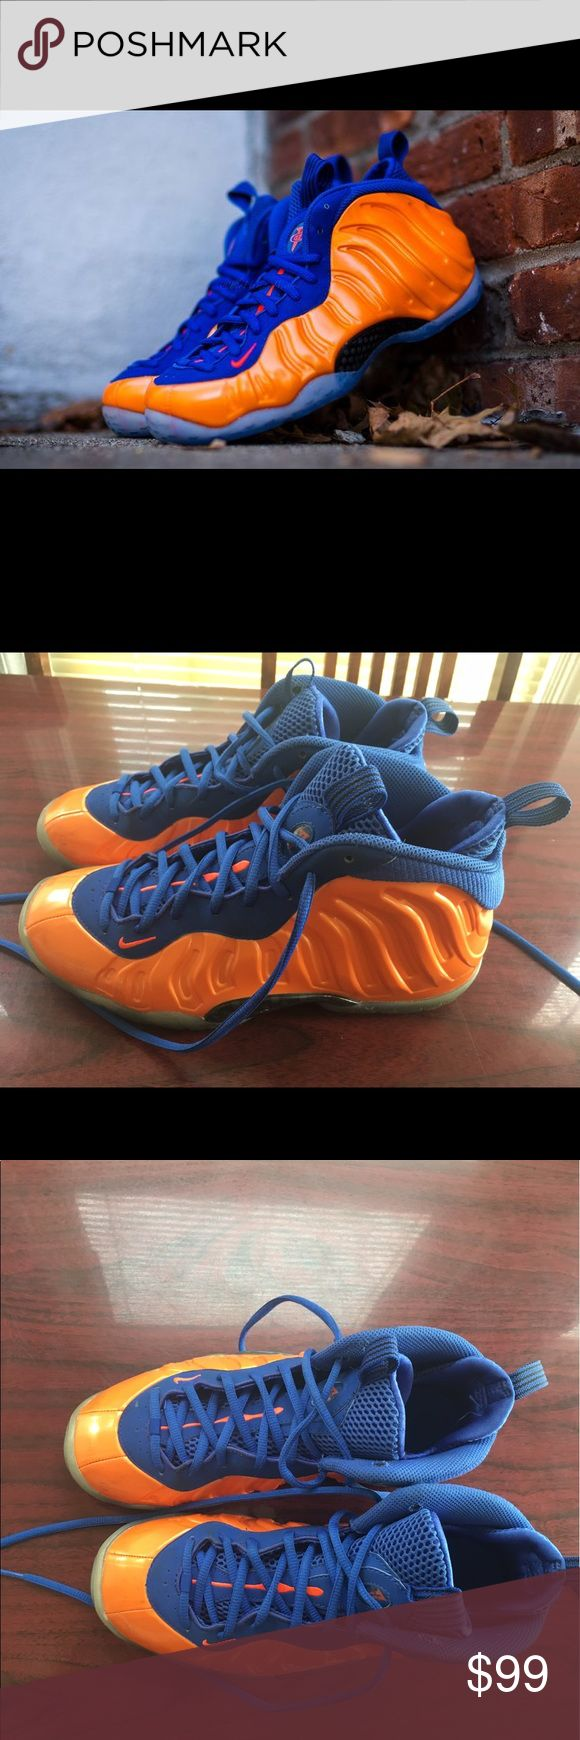 Knicks Foamposites 7Y Good condition overall no rips or stains - please read my No Fake post for more info on the shoes ! Make reasonable offers !  See the picture on the front they have to be cleaned and no major scratches normal wear ! Equivalent to size women's 9 (estimated) Nike Shoes Sneakers